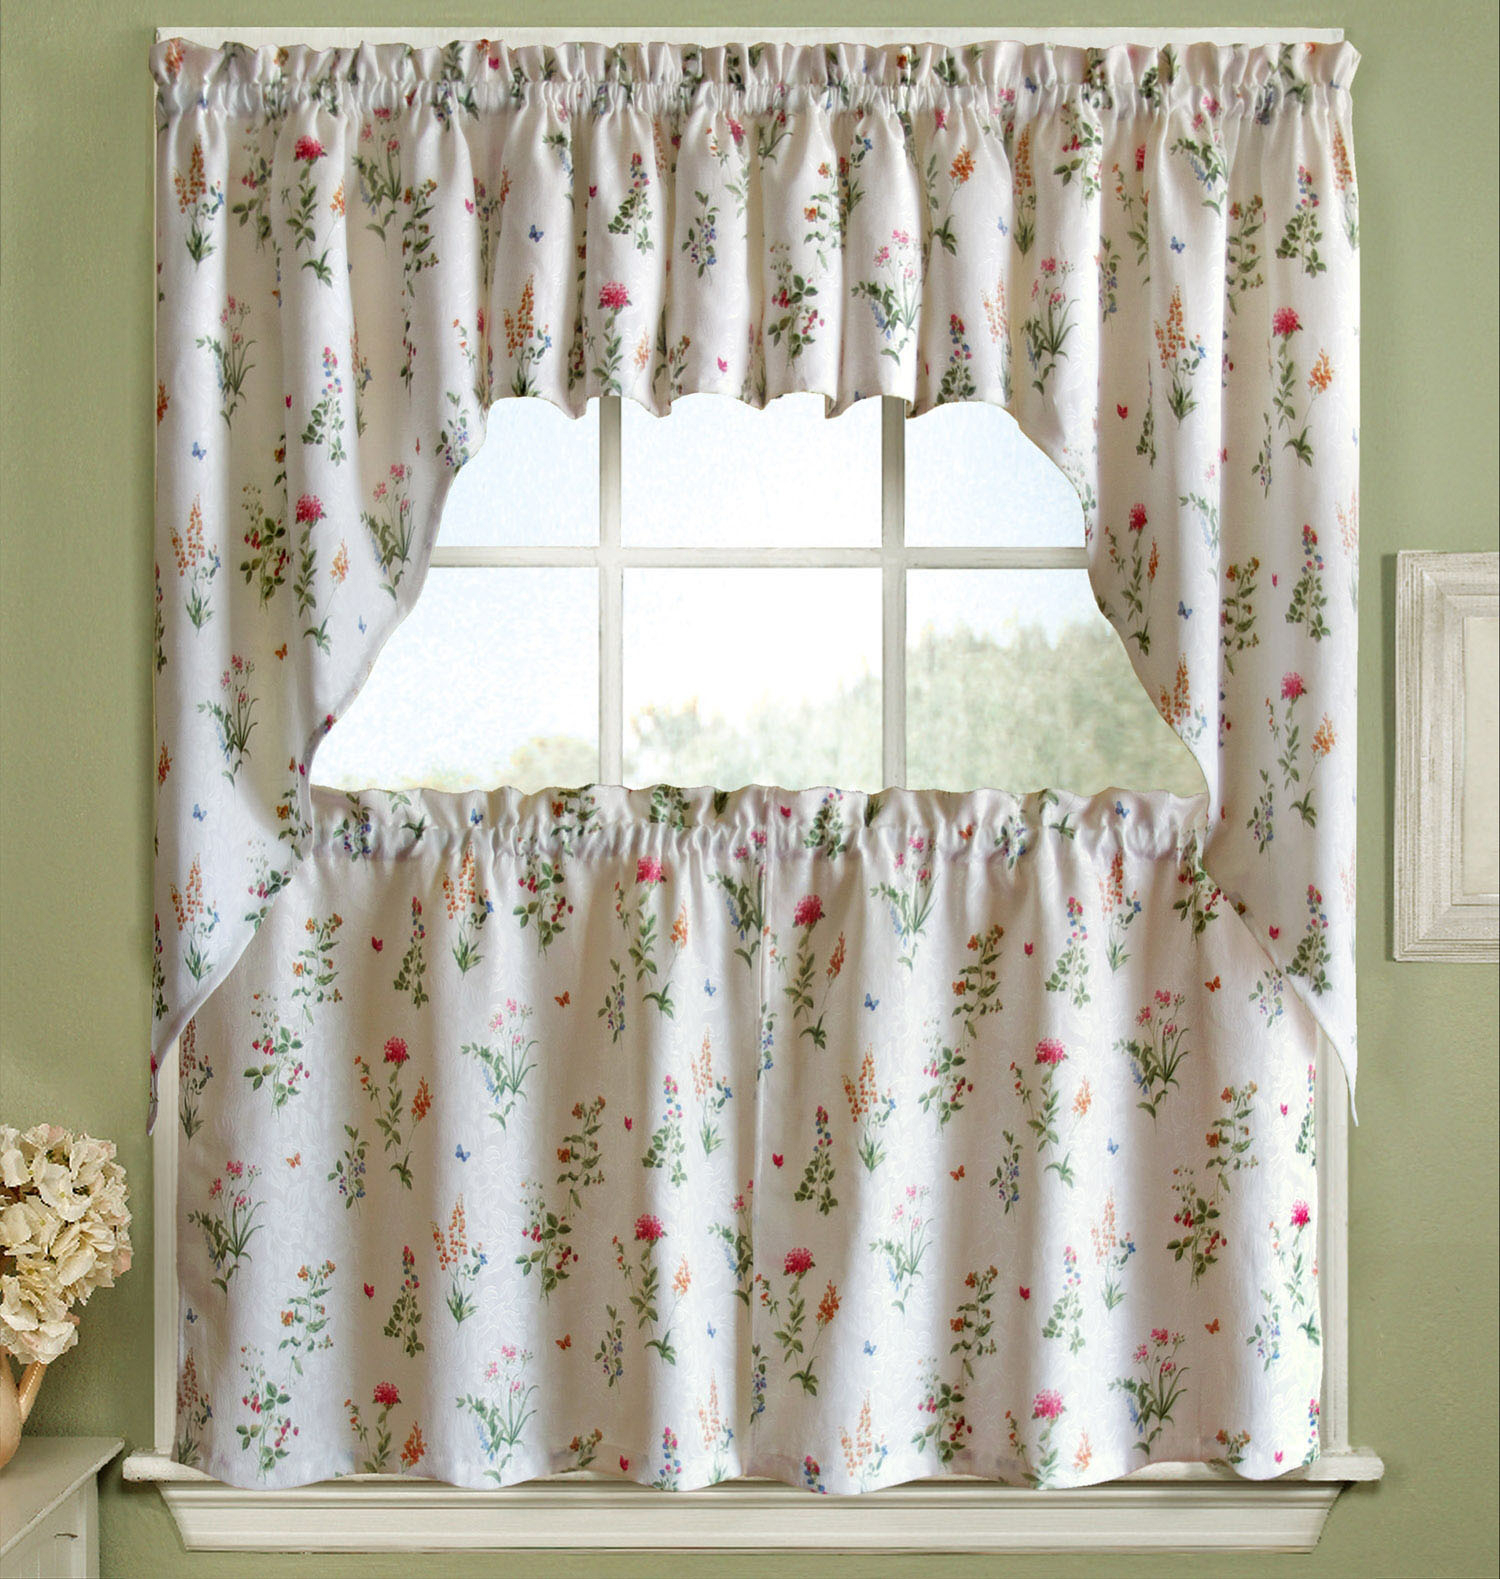 """Details About Jacquard Kitchen Curtain 36"""" Tier, Swag, Valance Set English Garden Floral White In Cotton Blend Ivy Floral Tier Curtain And Swag Sets (View 10 of 20)"""